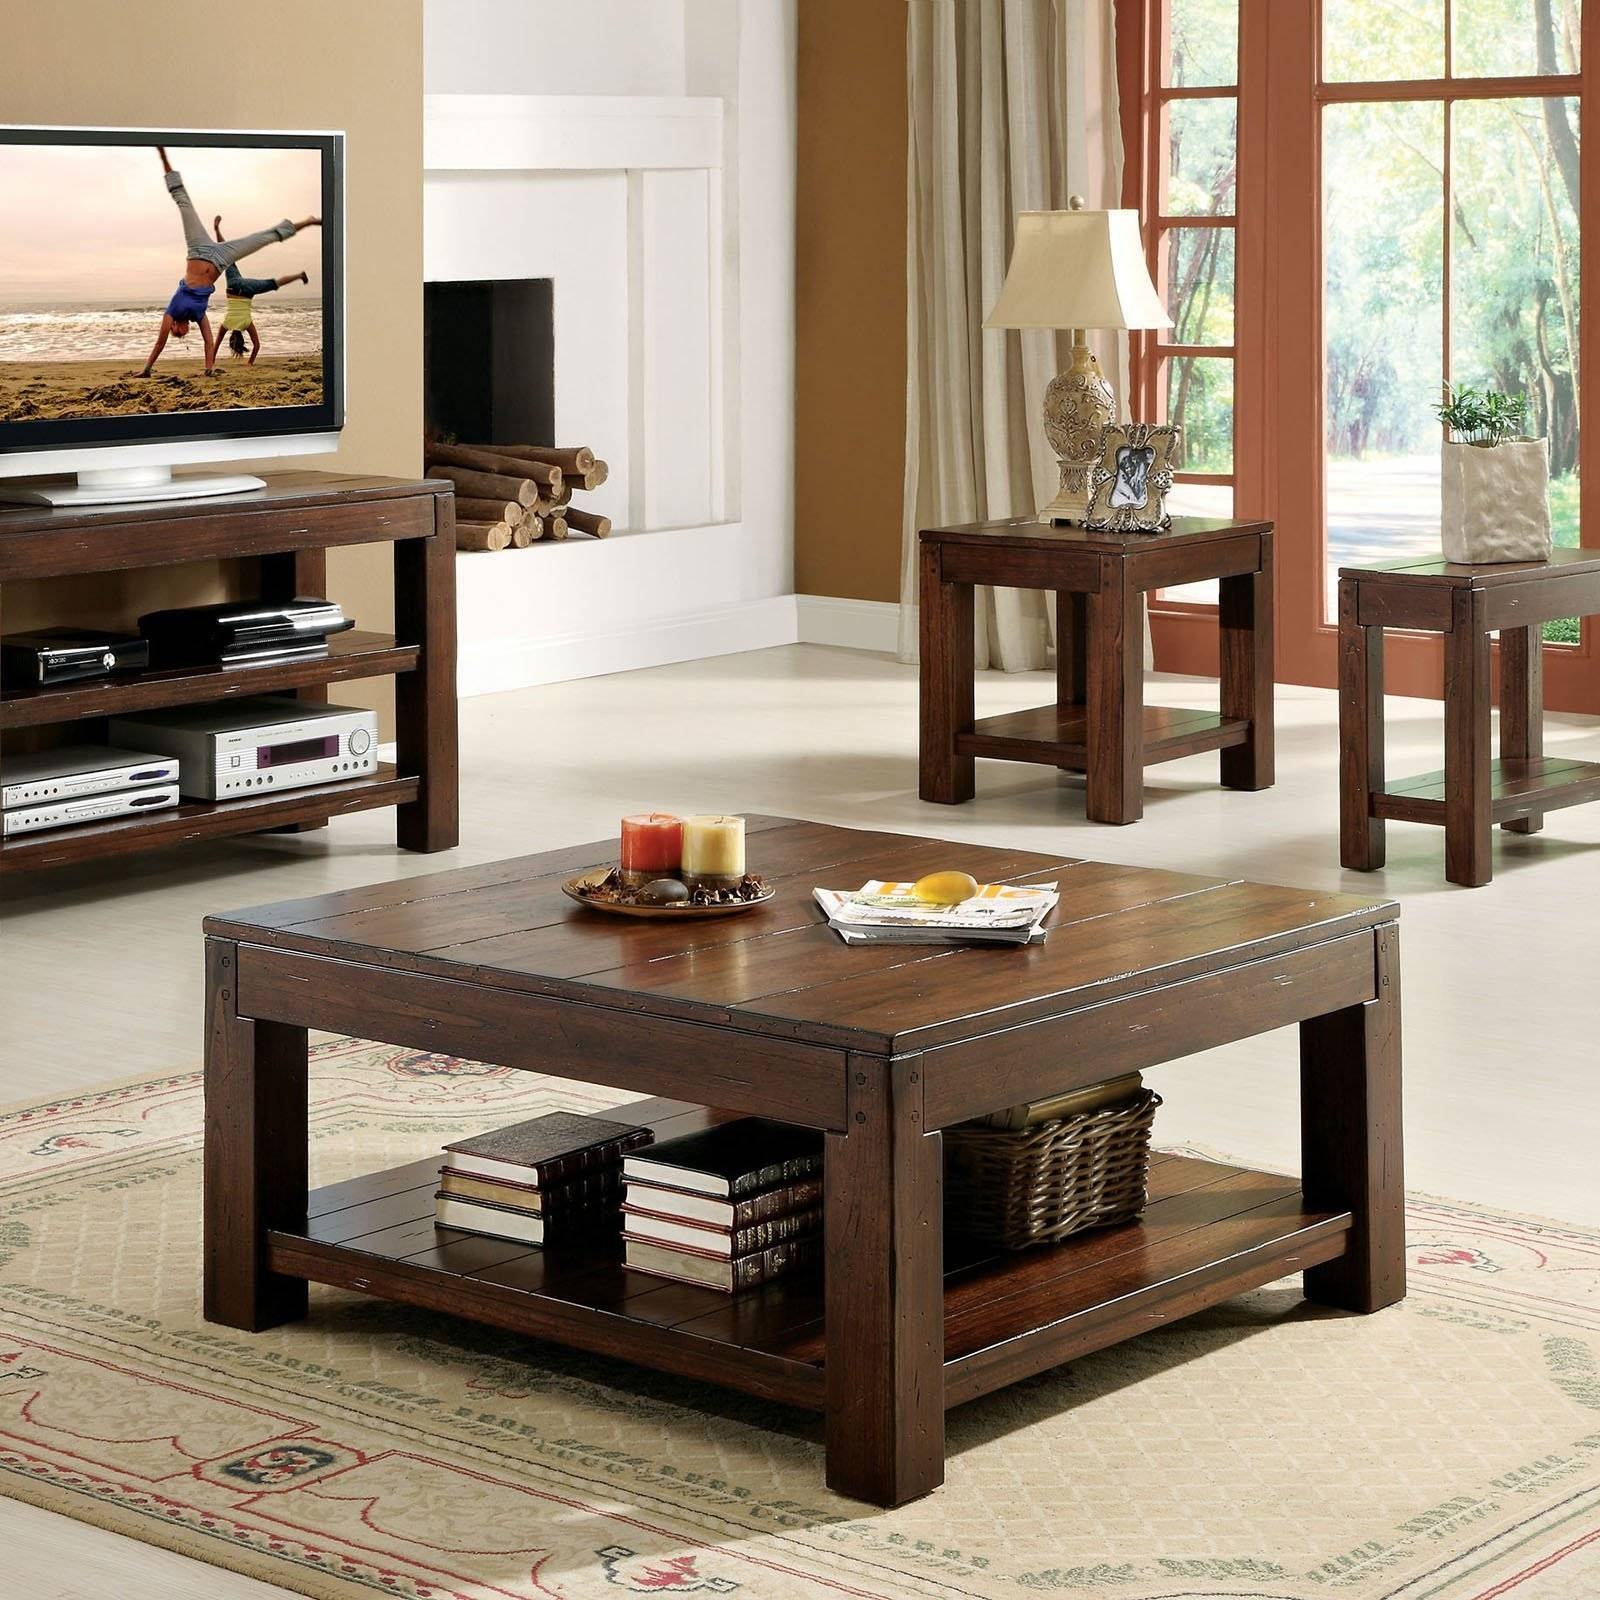 Wooden Coffee Table And Tv Stand - Coffee Addicts with Coffee Tables And Tv Stands (Image 30 of 30)